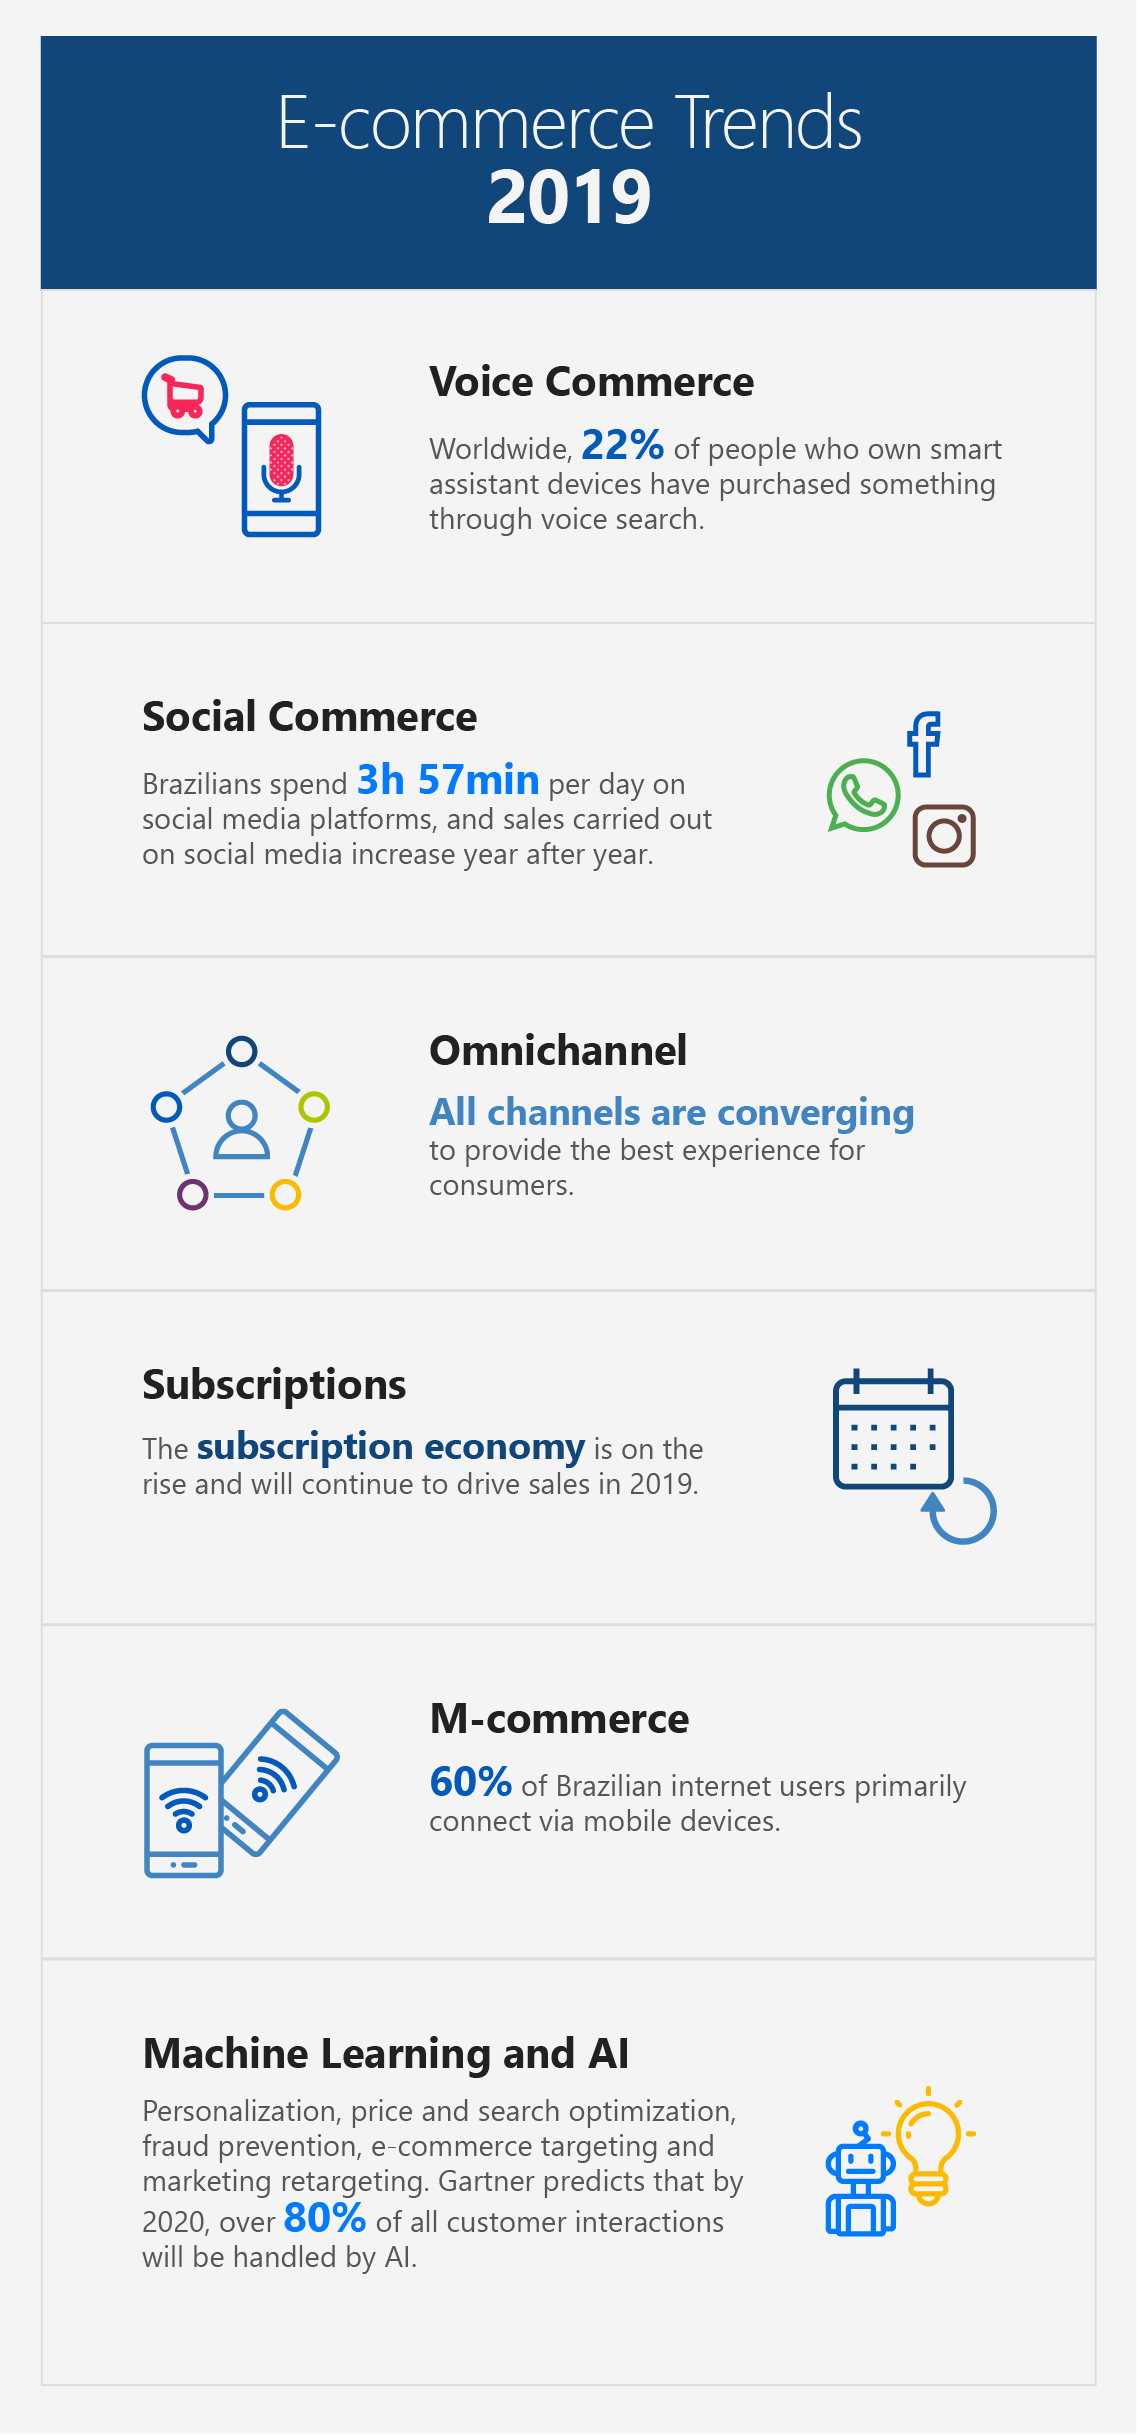 e-commerce trends 2019